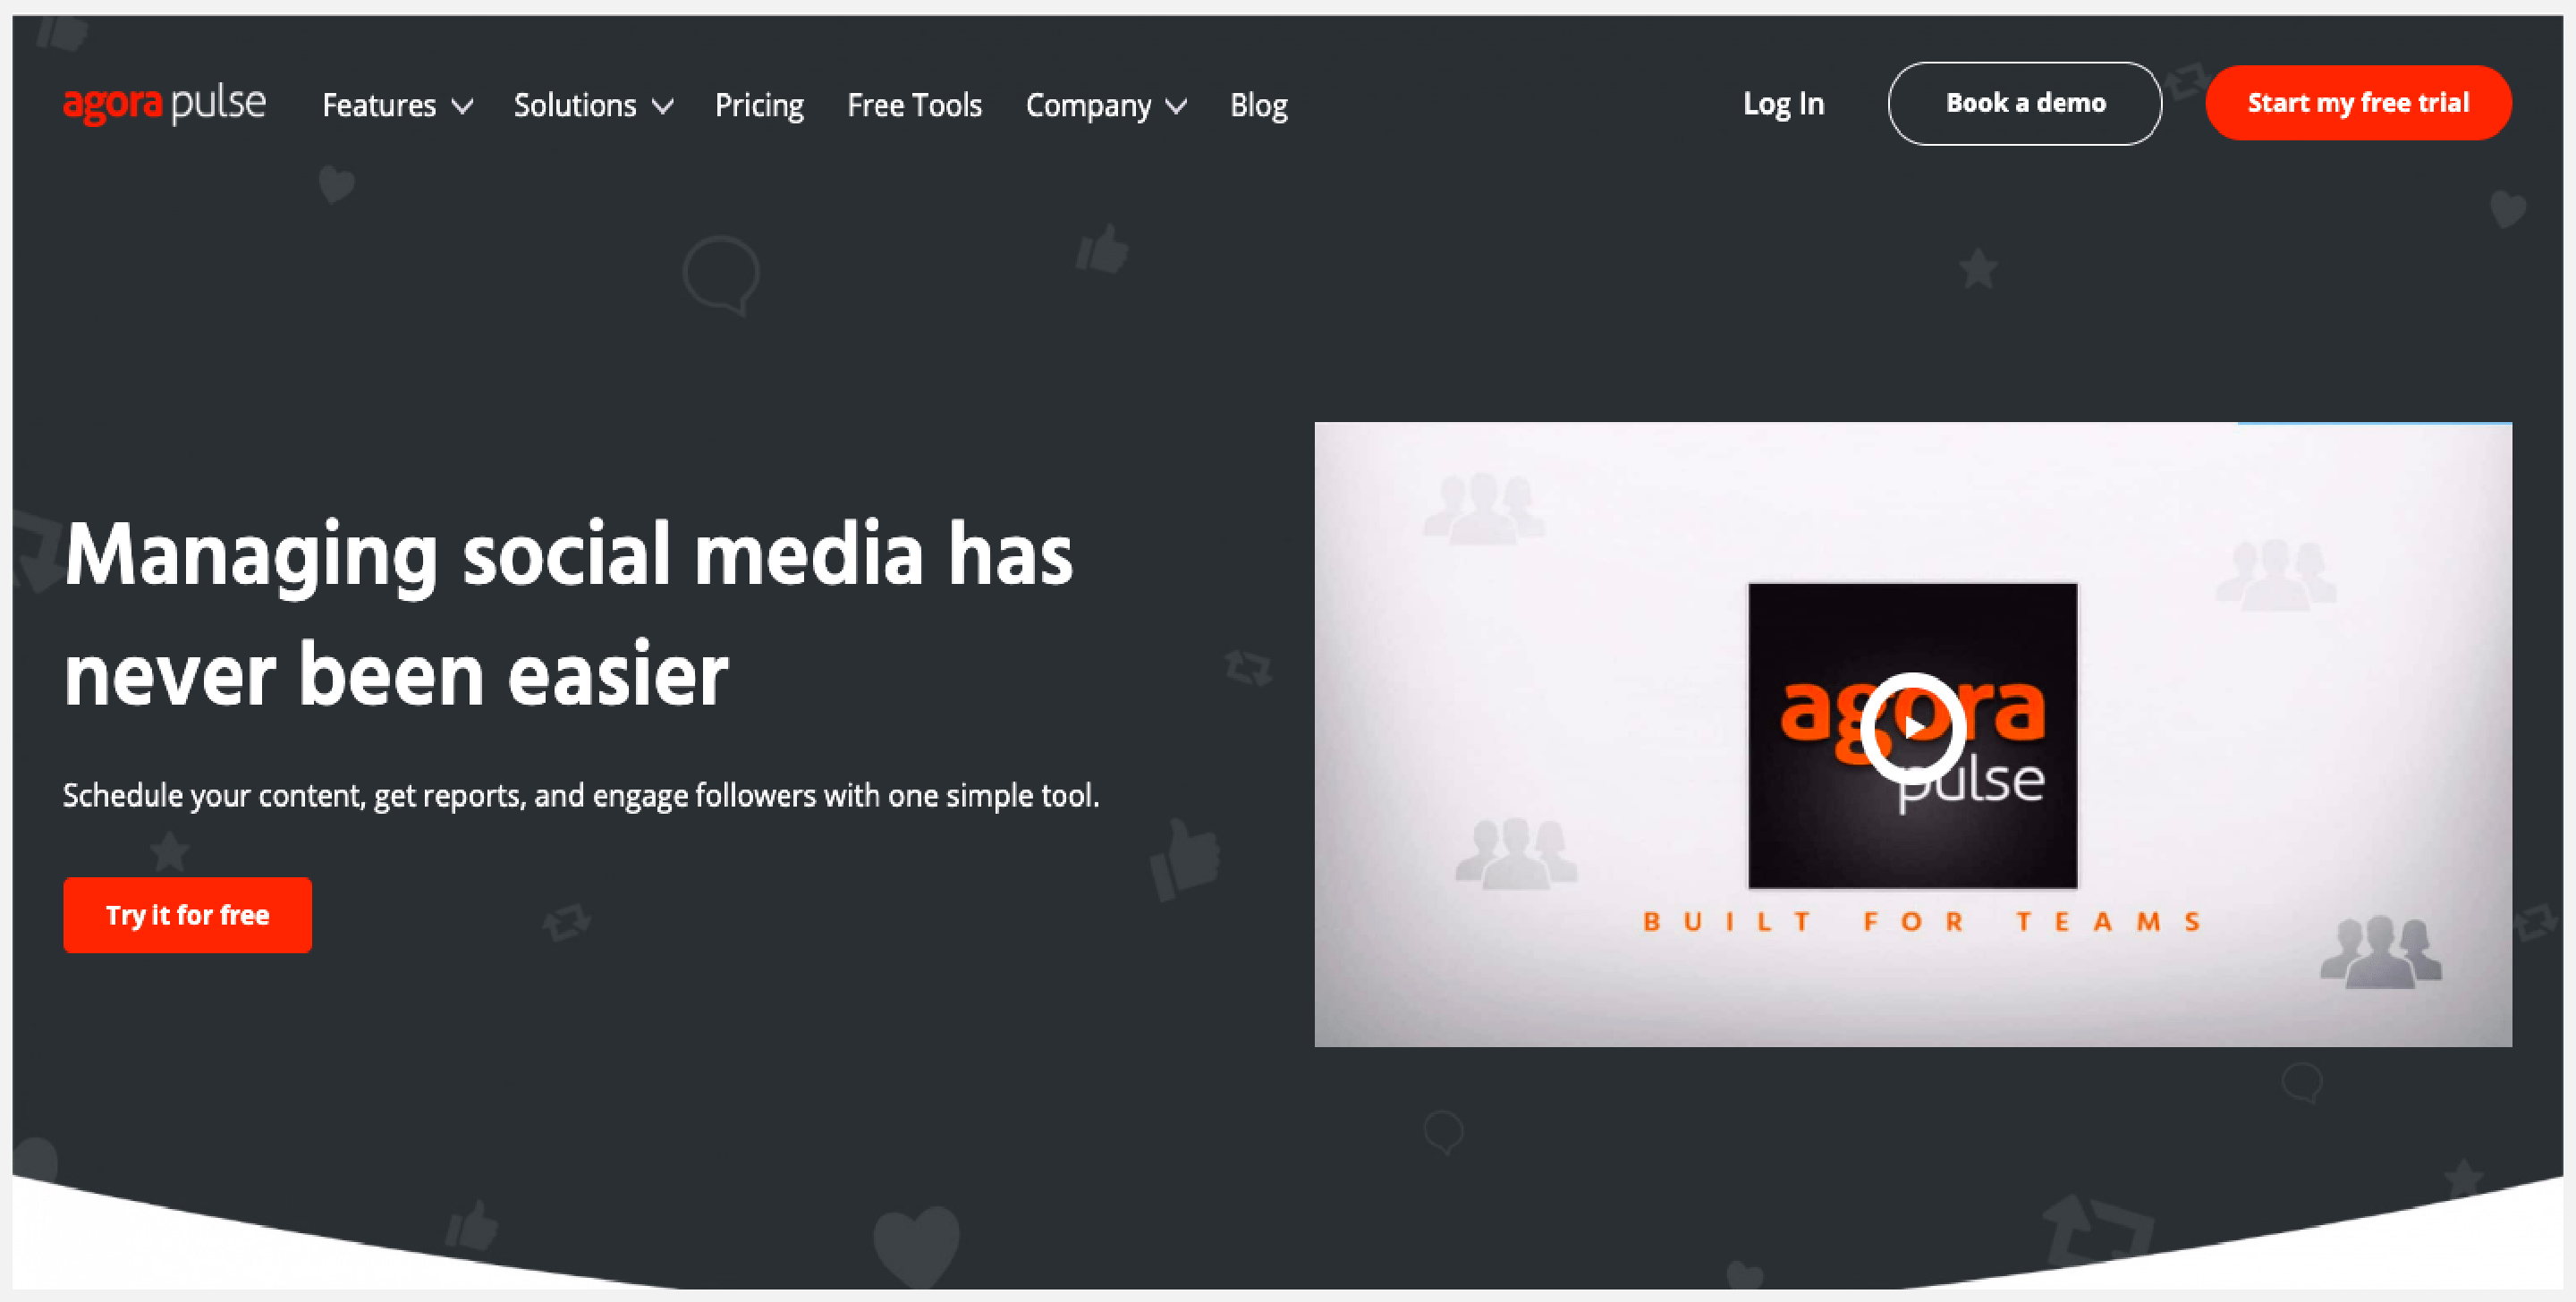 AgoraPulse definitely makes for a good social media management platform owing to its decent list of features, affordable price and responsive customer service team.